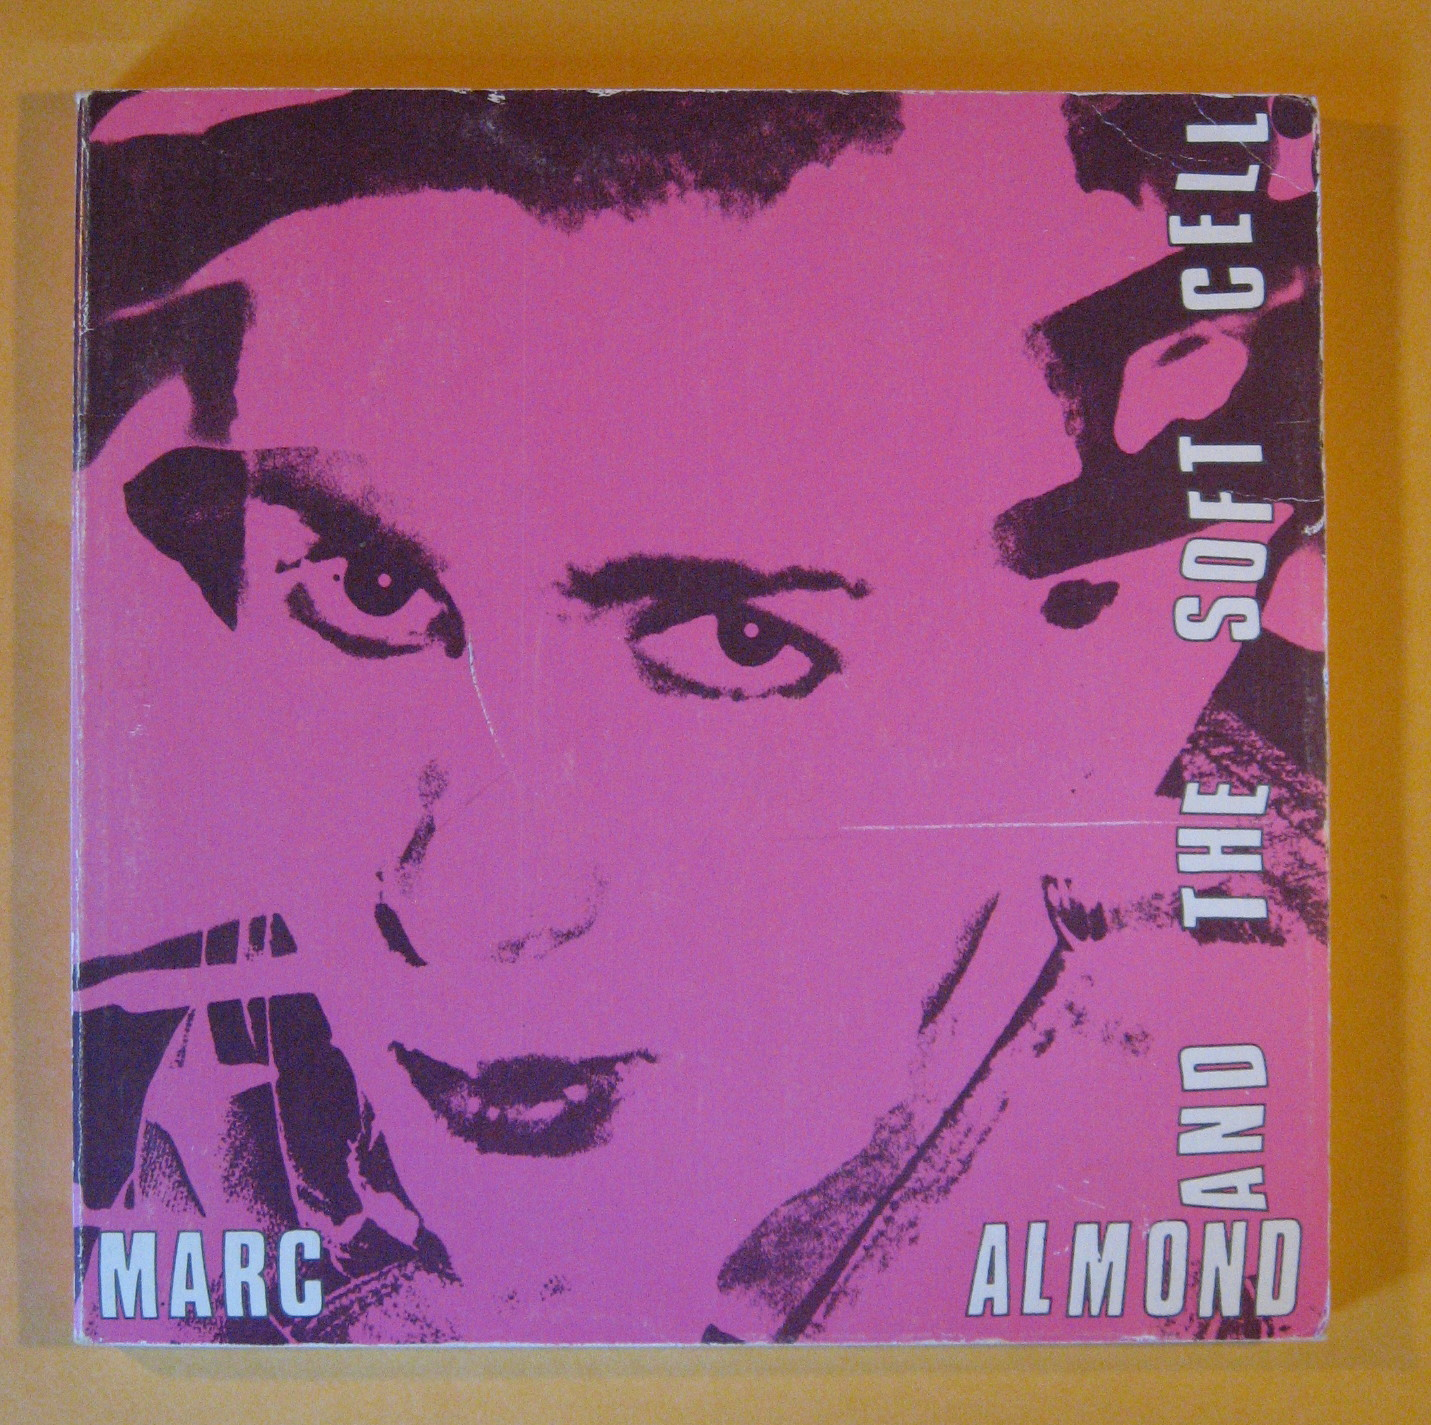 Marc Almond and the Soft Cell